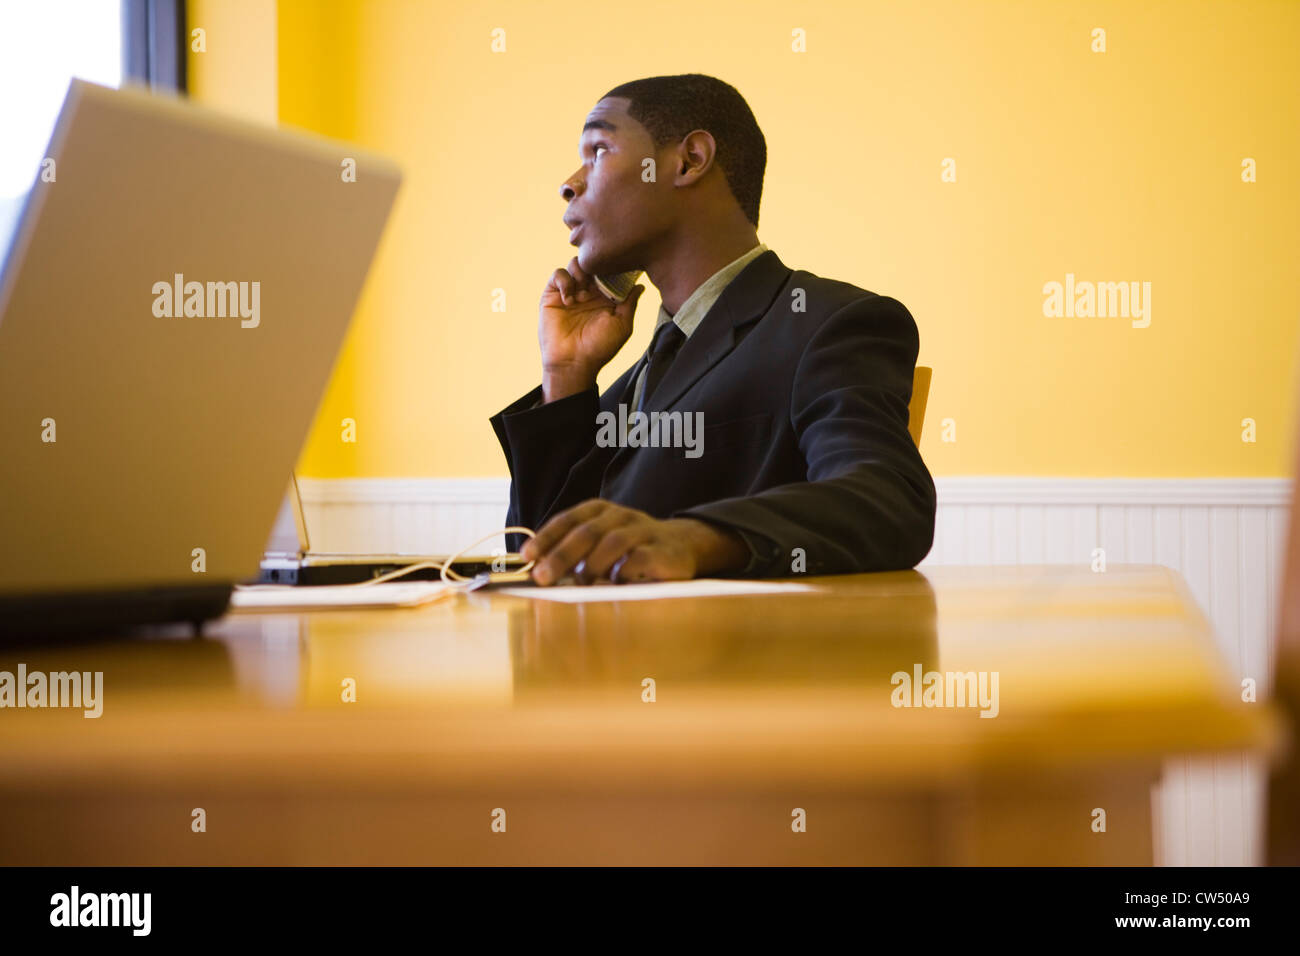 Businessman in full suit using mobile phone and laptop in an office - Stock Image